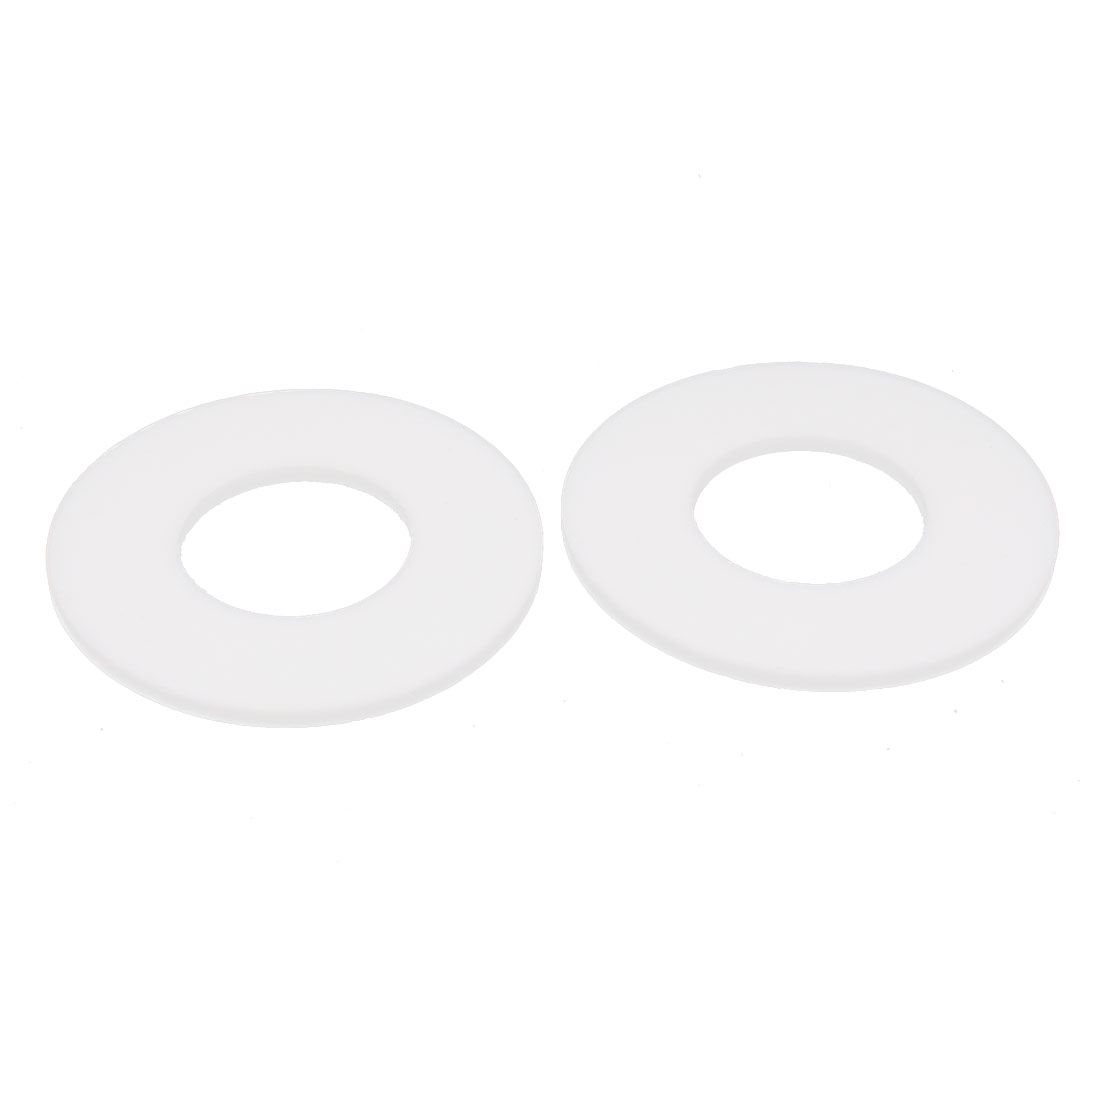 DN25 32x68x3mm PTFE Flange Gasket Sanitary Pipe Fitting Ferrules White 2pcs